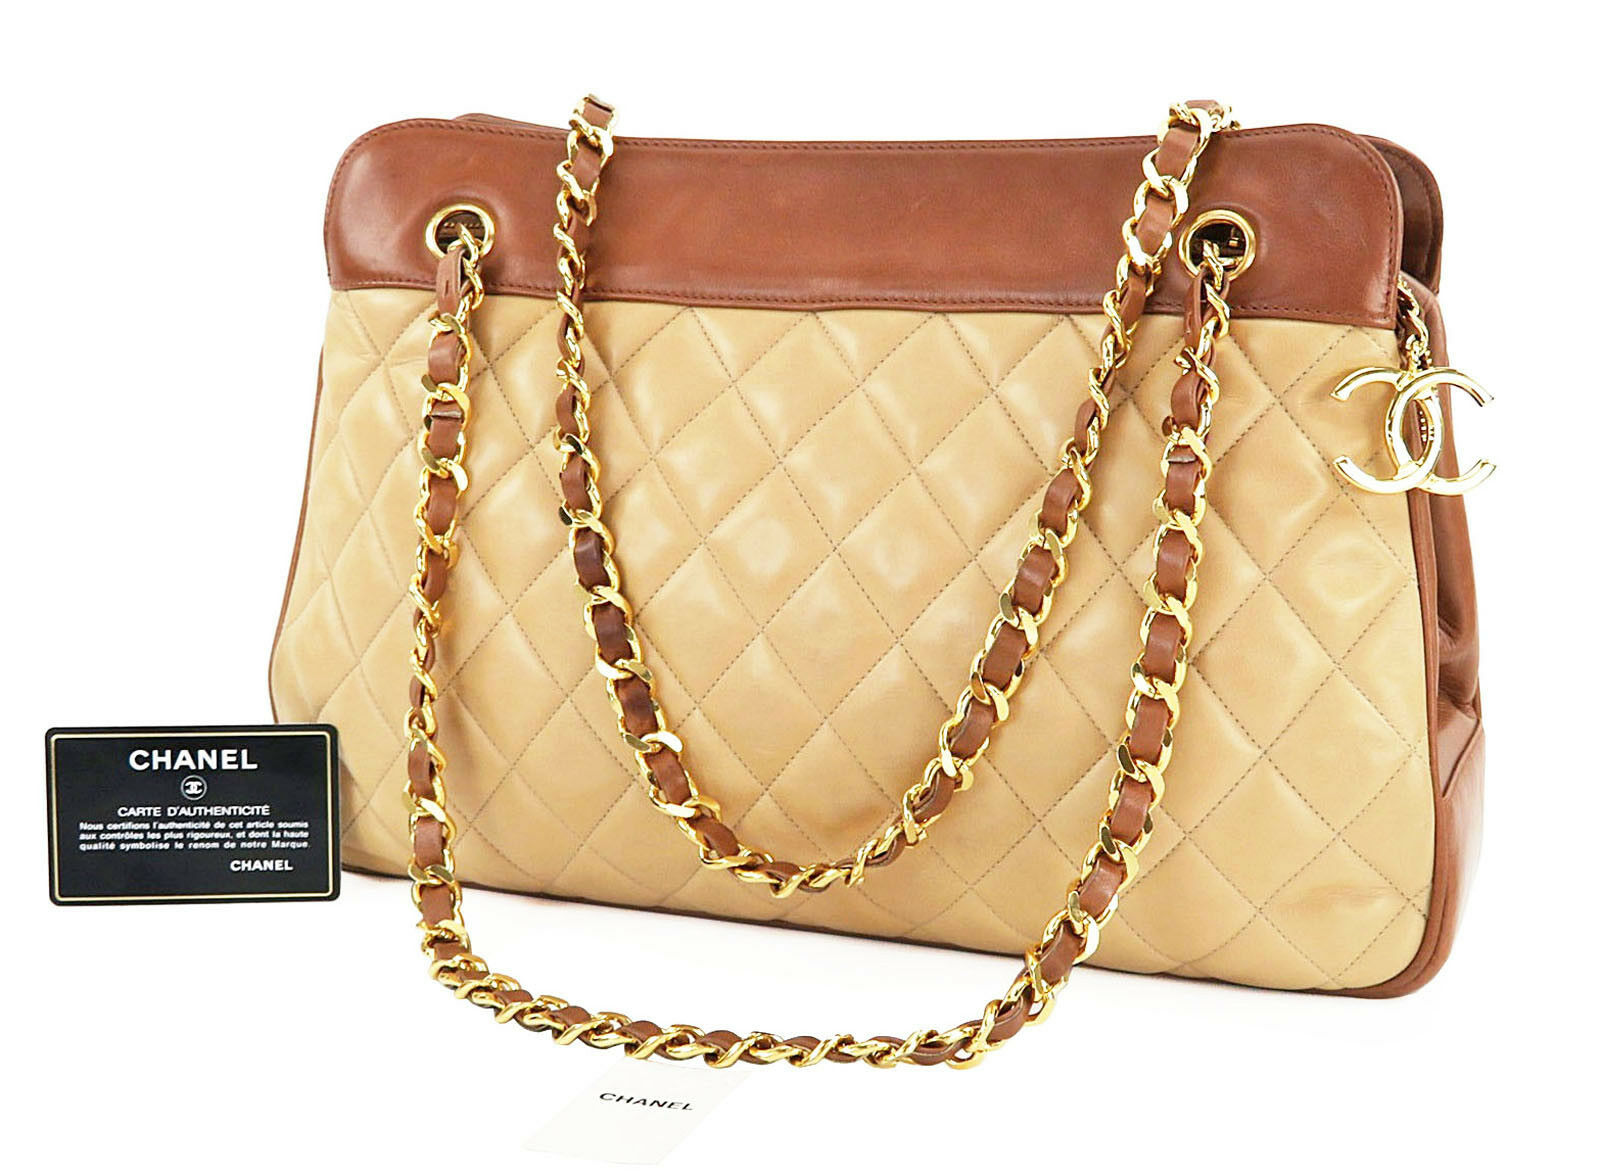 Authentic CHANEL Beige Lambskin Leather Gold Chain Tote Shoulder Bag #27888